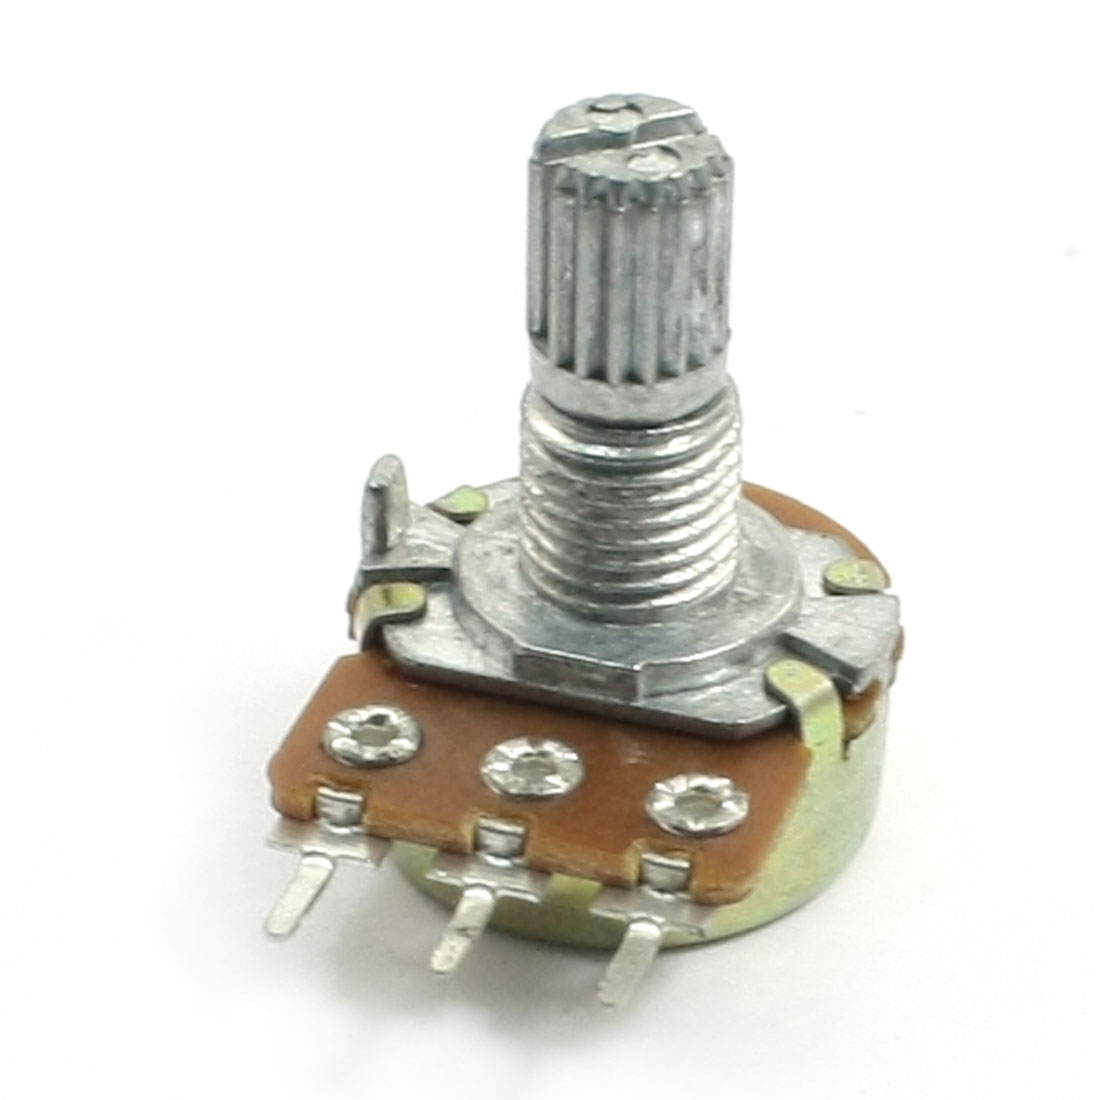 A10K 10K Ohm 6mm Split Shaft Single Turn Rotary Taper Potentiometer